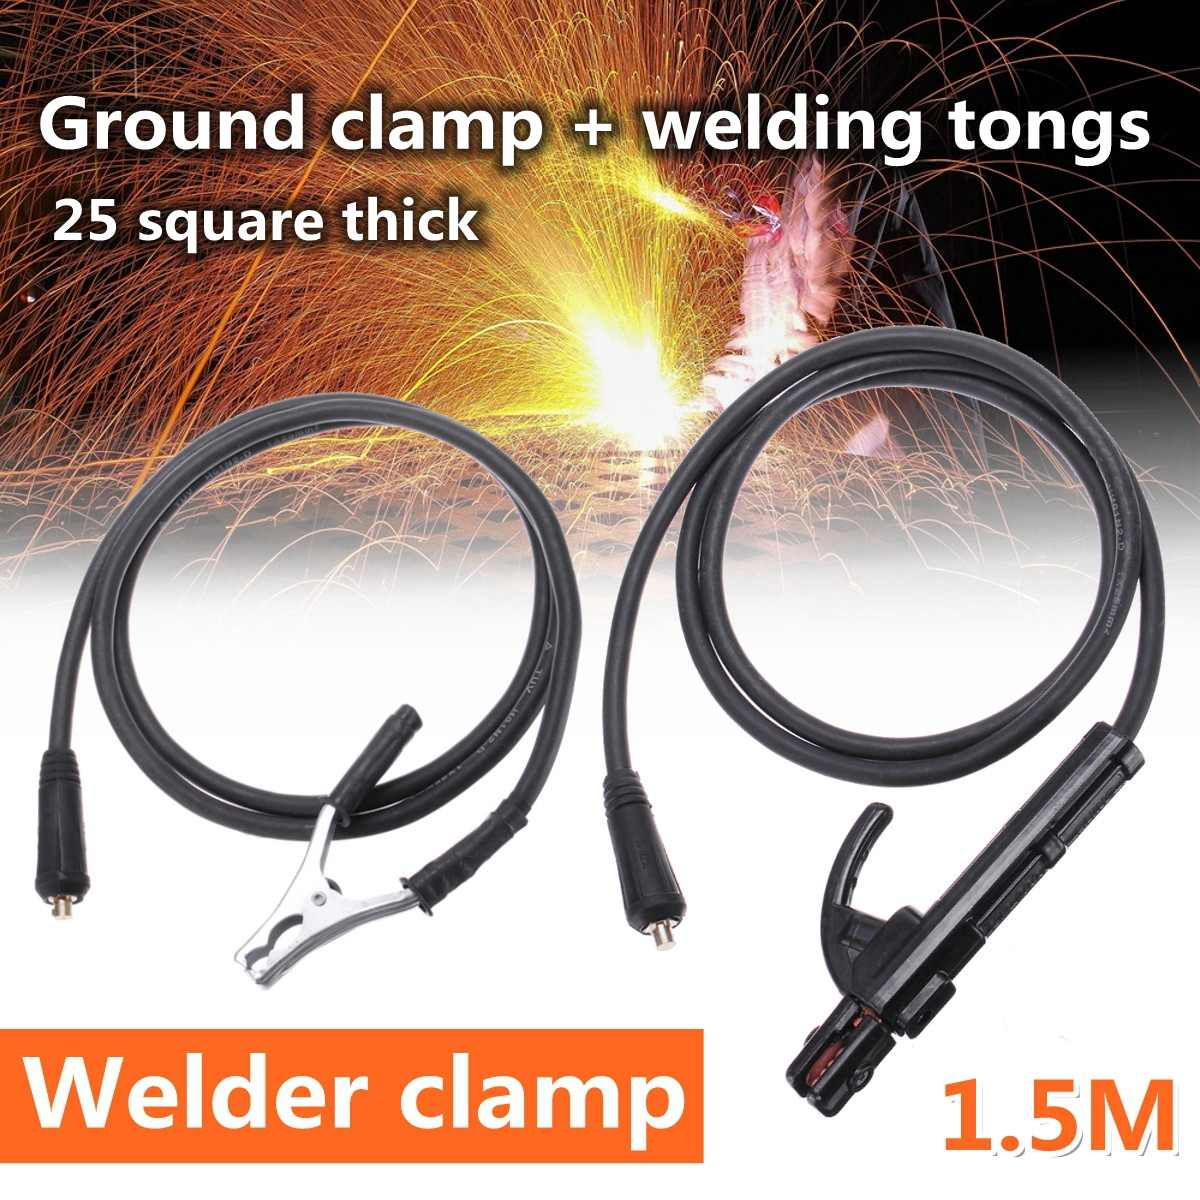 300A Ground Earth Welding Clamp Clip 150cm Wire For ARC Welding Inverter Machine For Professional Use Manual Welder Grip Tool